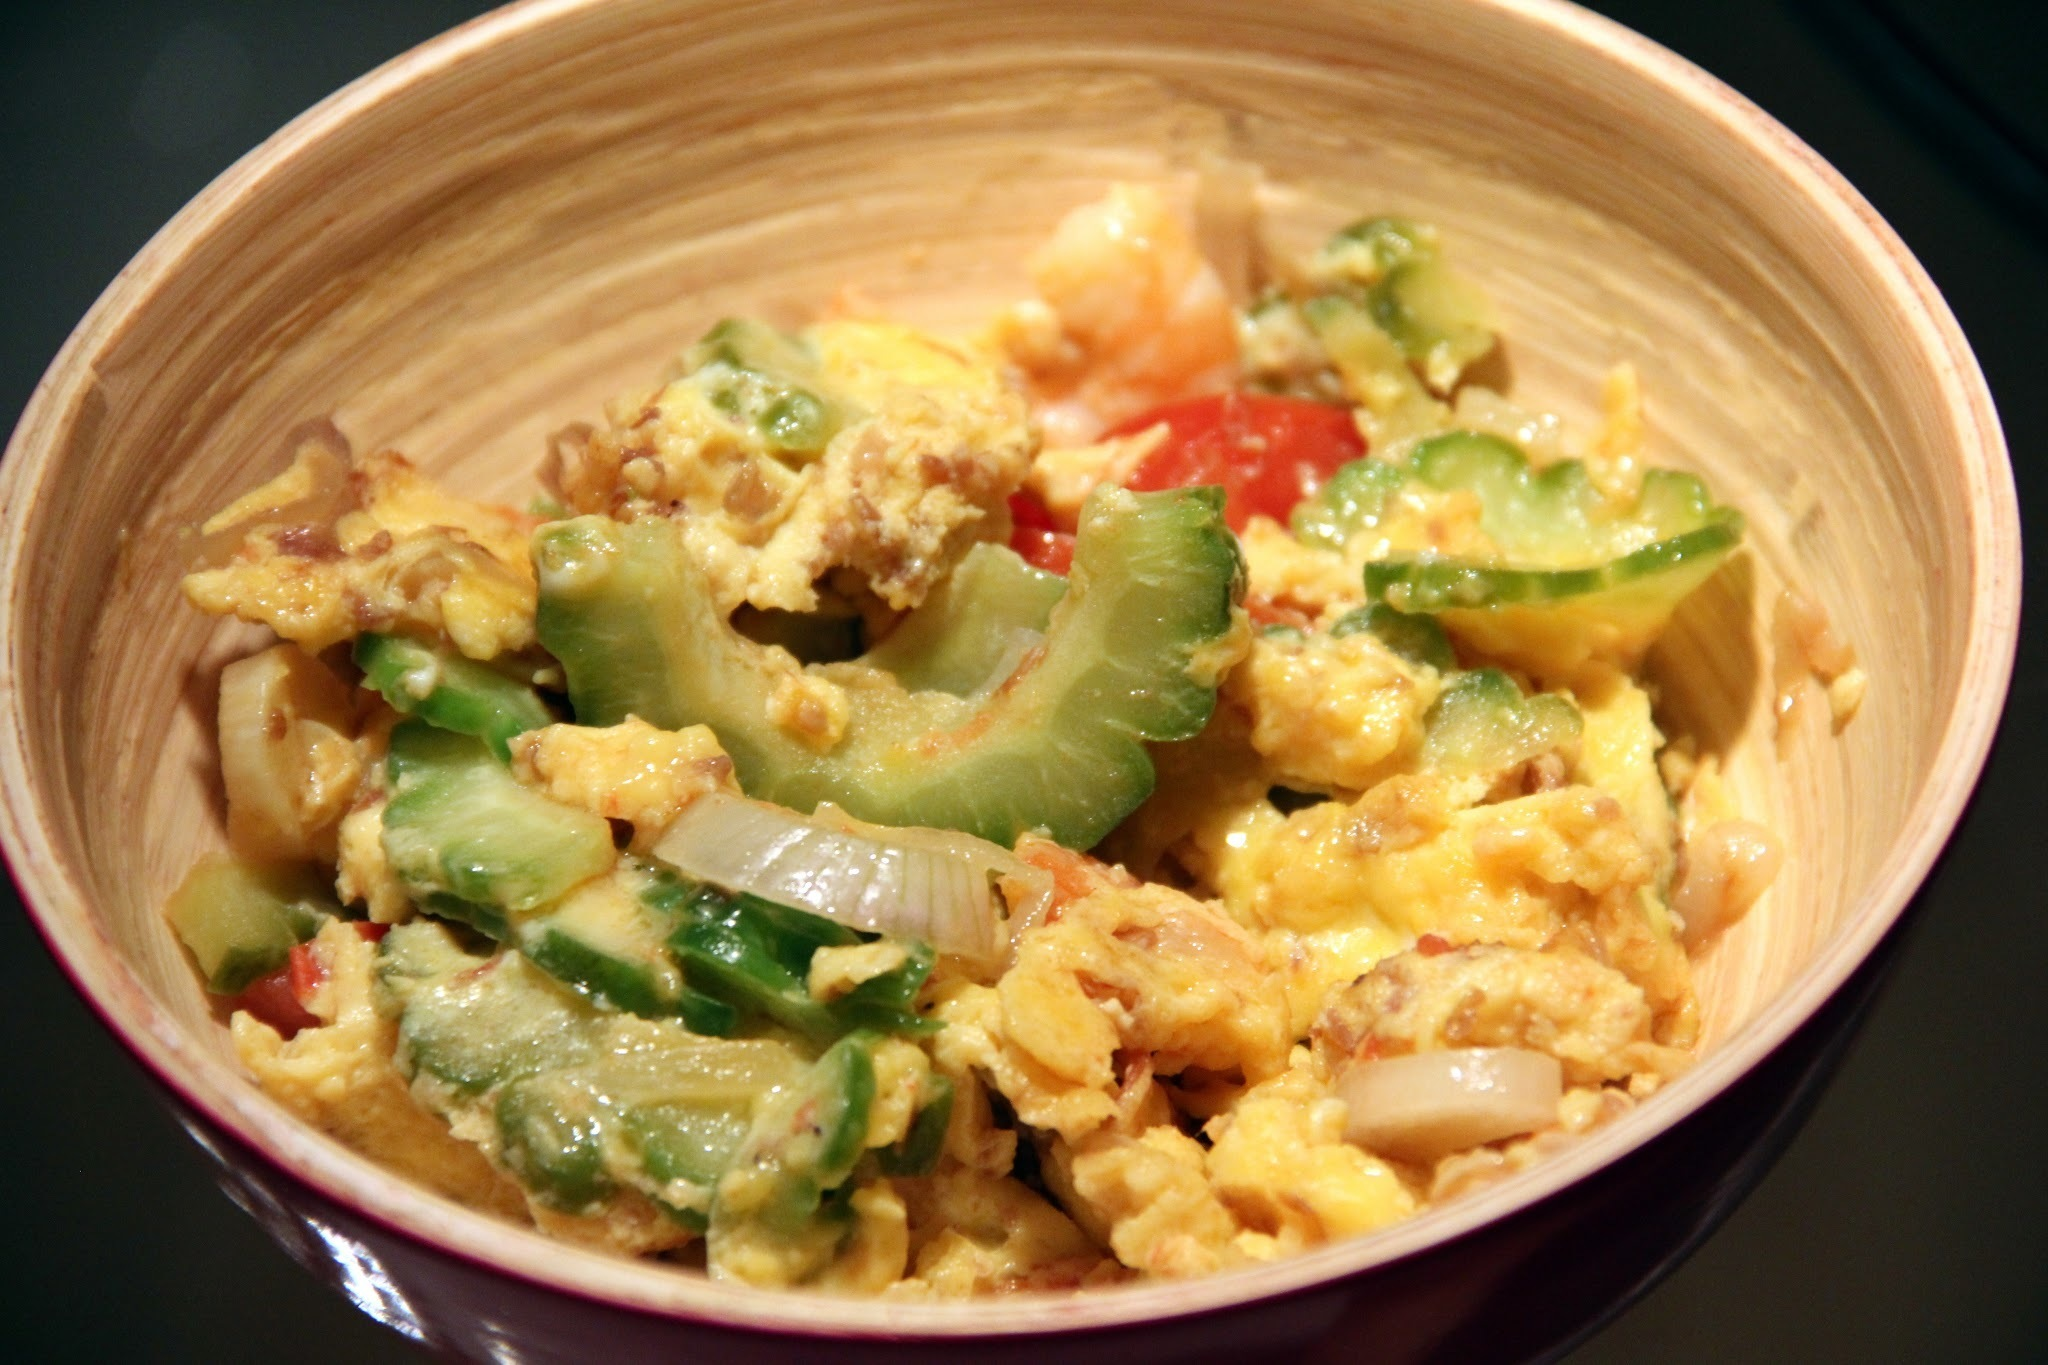 SAWCLicious Recipes: Bittergourd with Shrimps and Eggs (Ampalaya with Shrimps and Eggs)